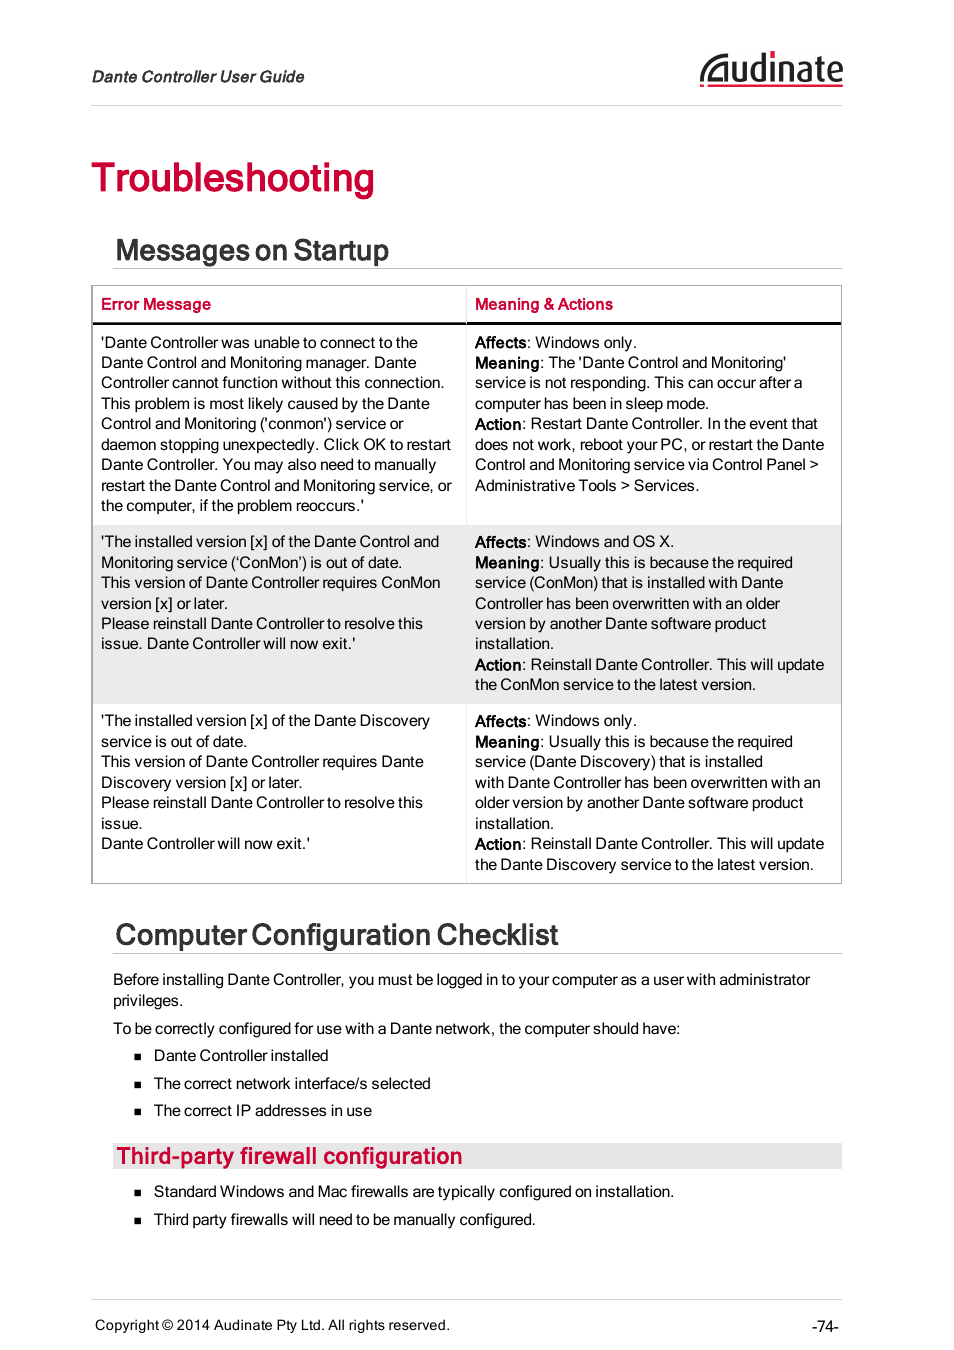 Troubleshooting, Messages on startup, Computer configuration